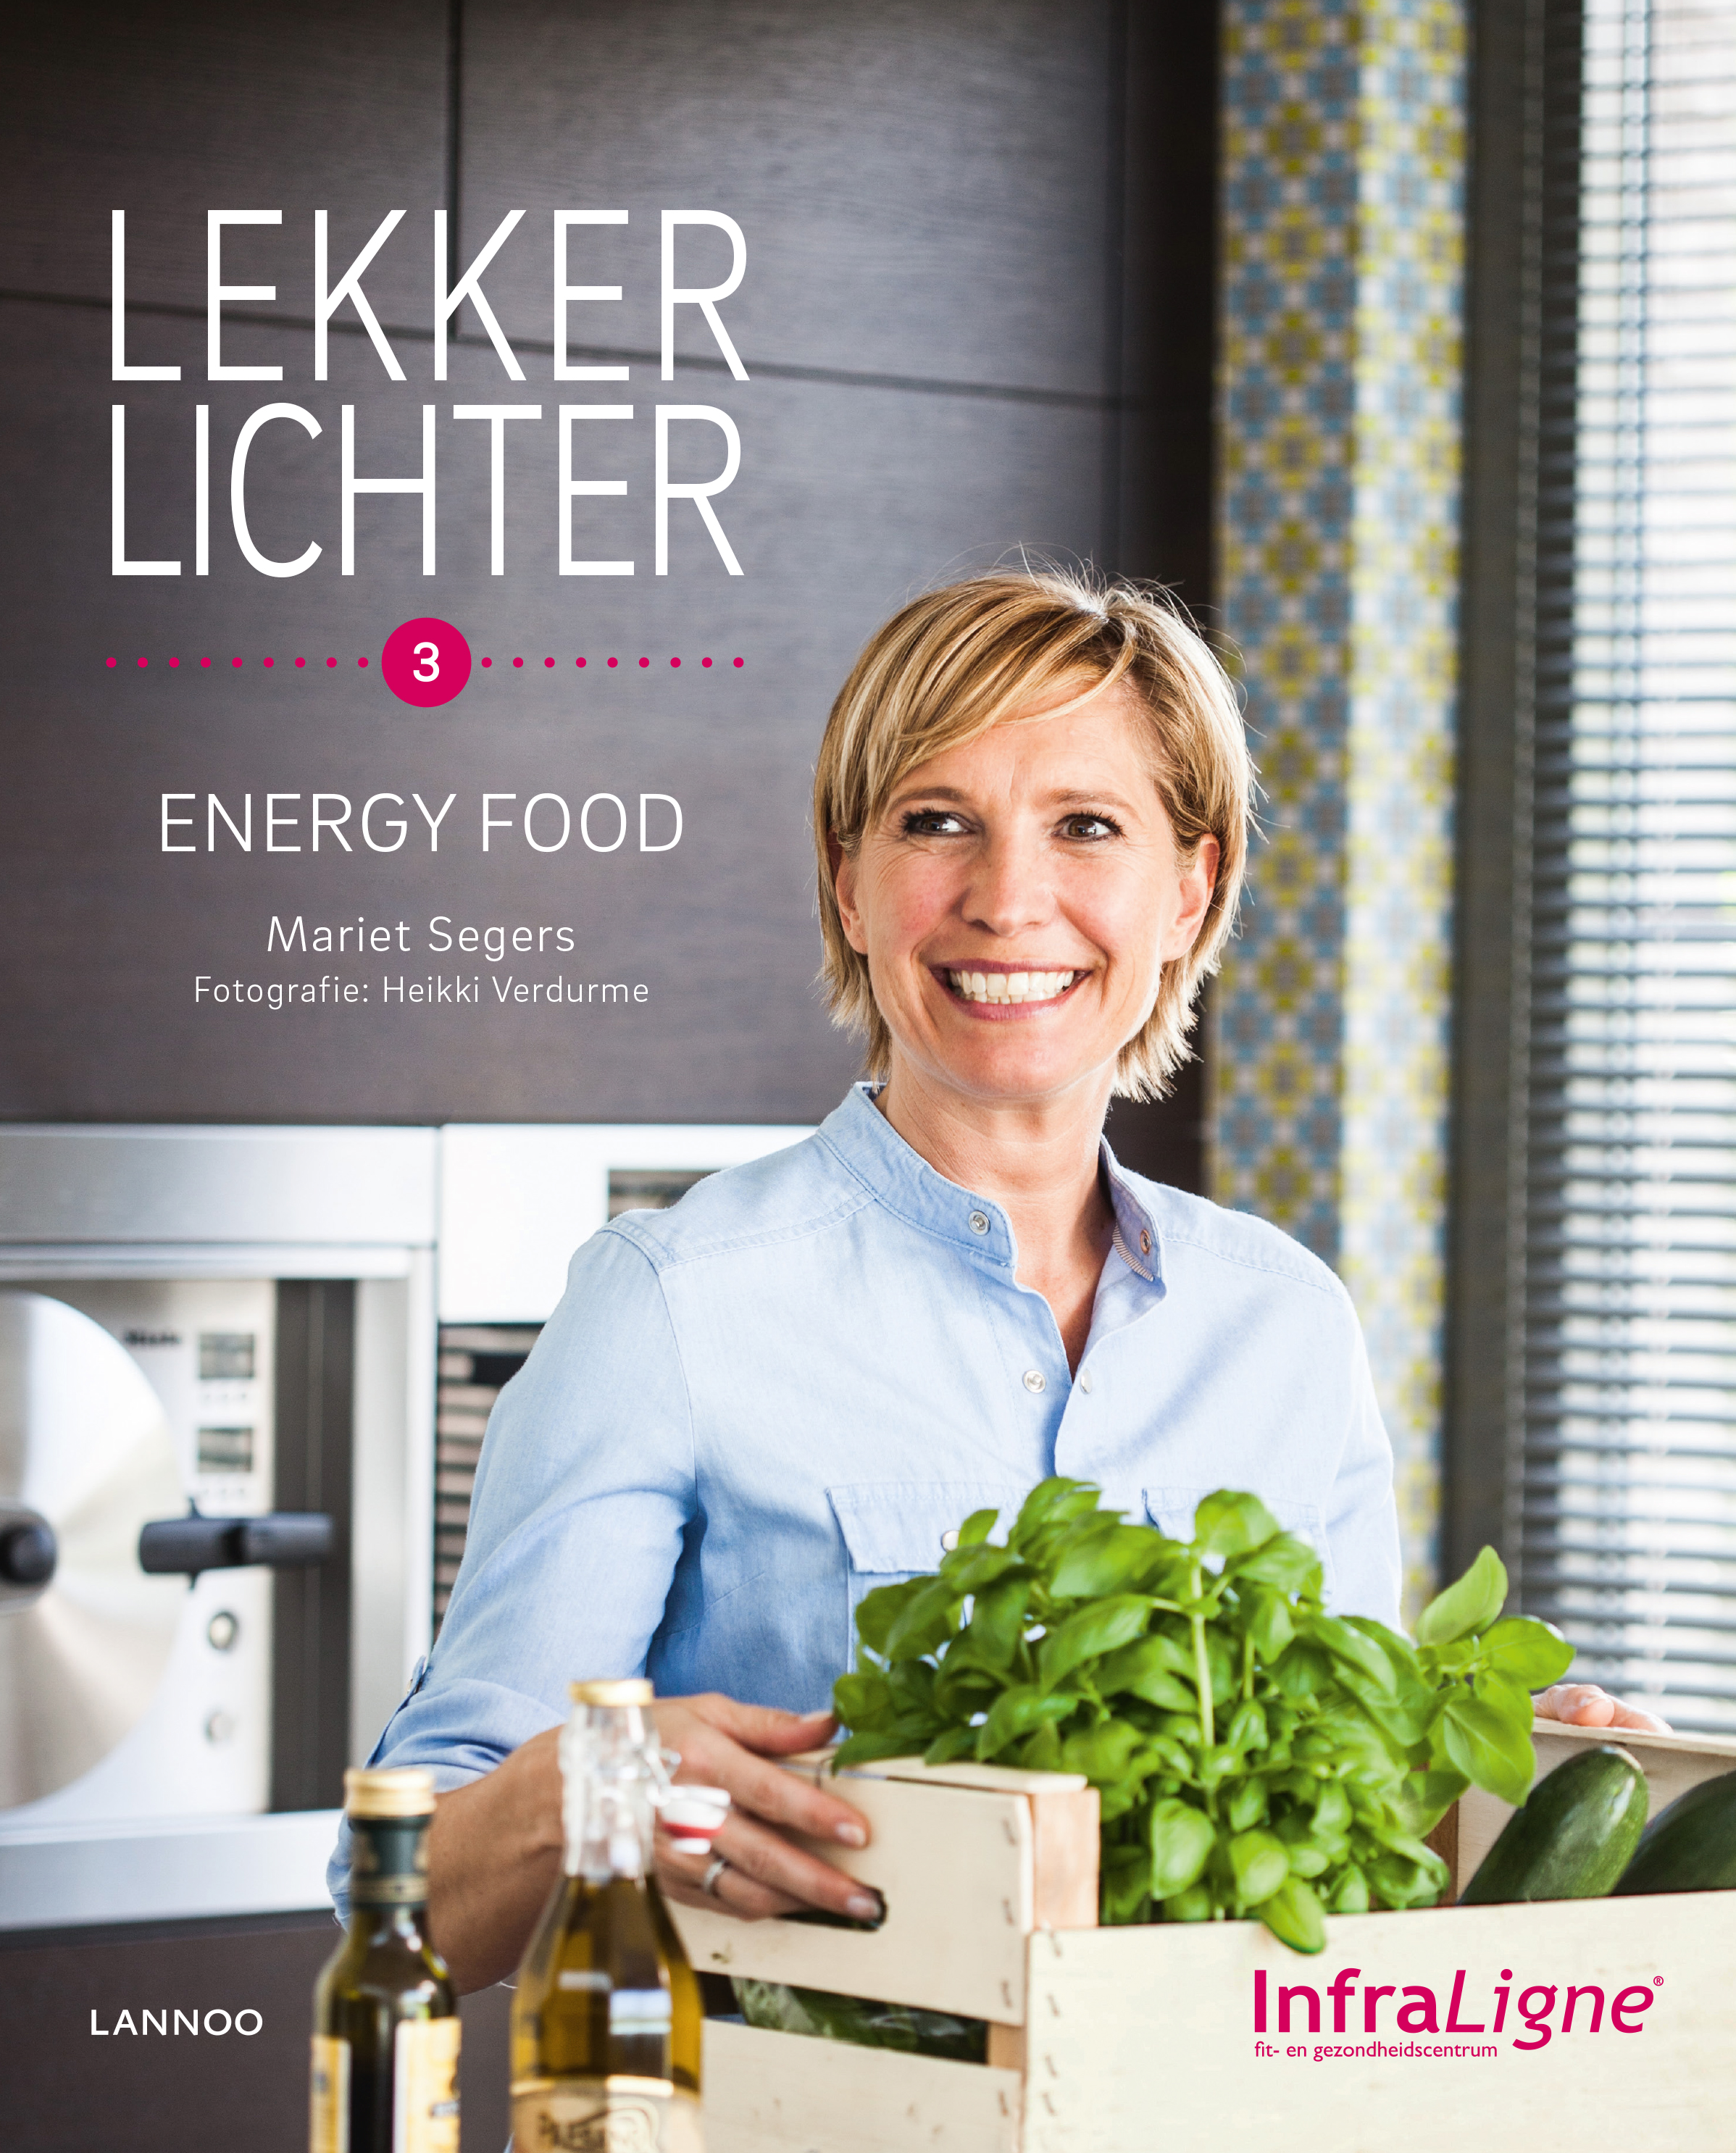 Energy Food met Infraligne in Lekker Lichter 3